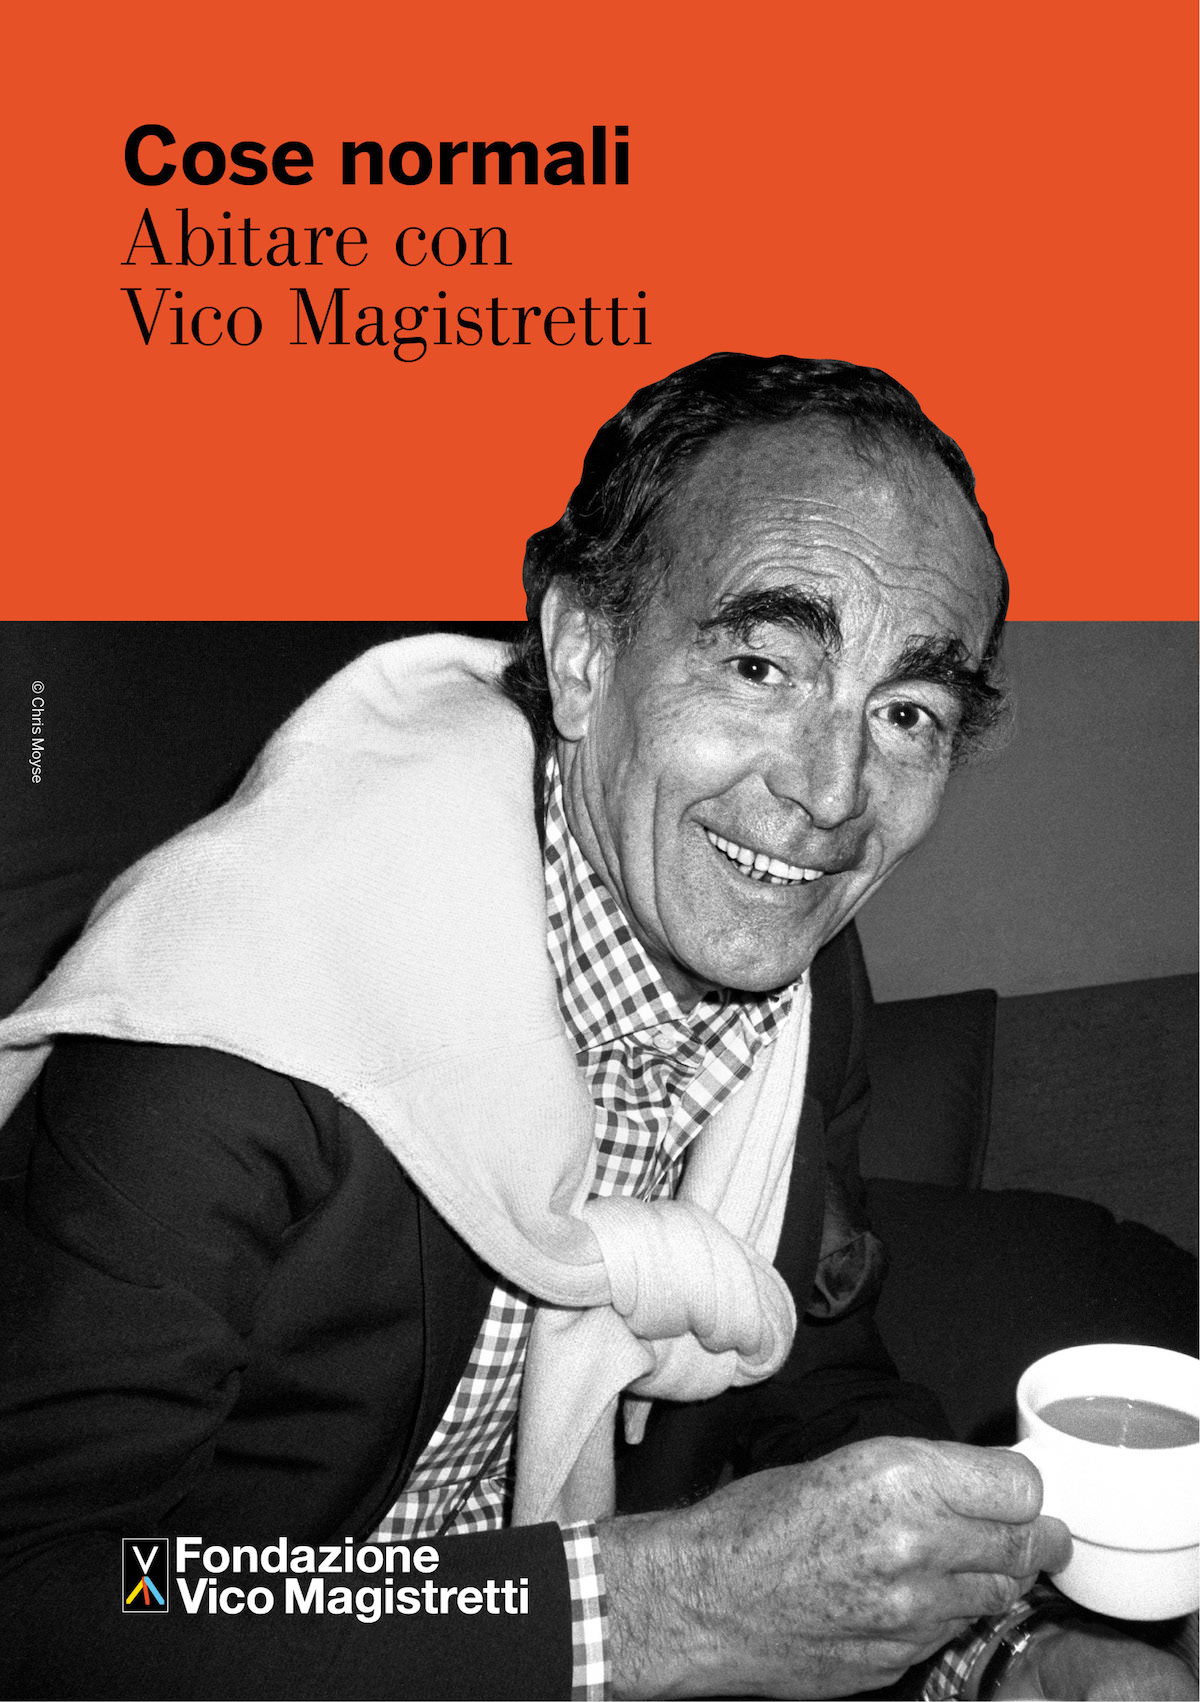 Cose normali. Abitare con Vico Magistretti. Photo by Chris Moyse